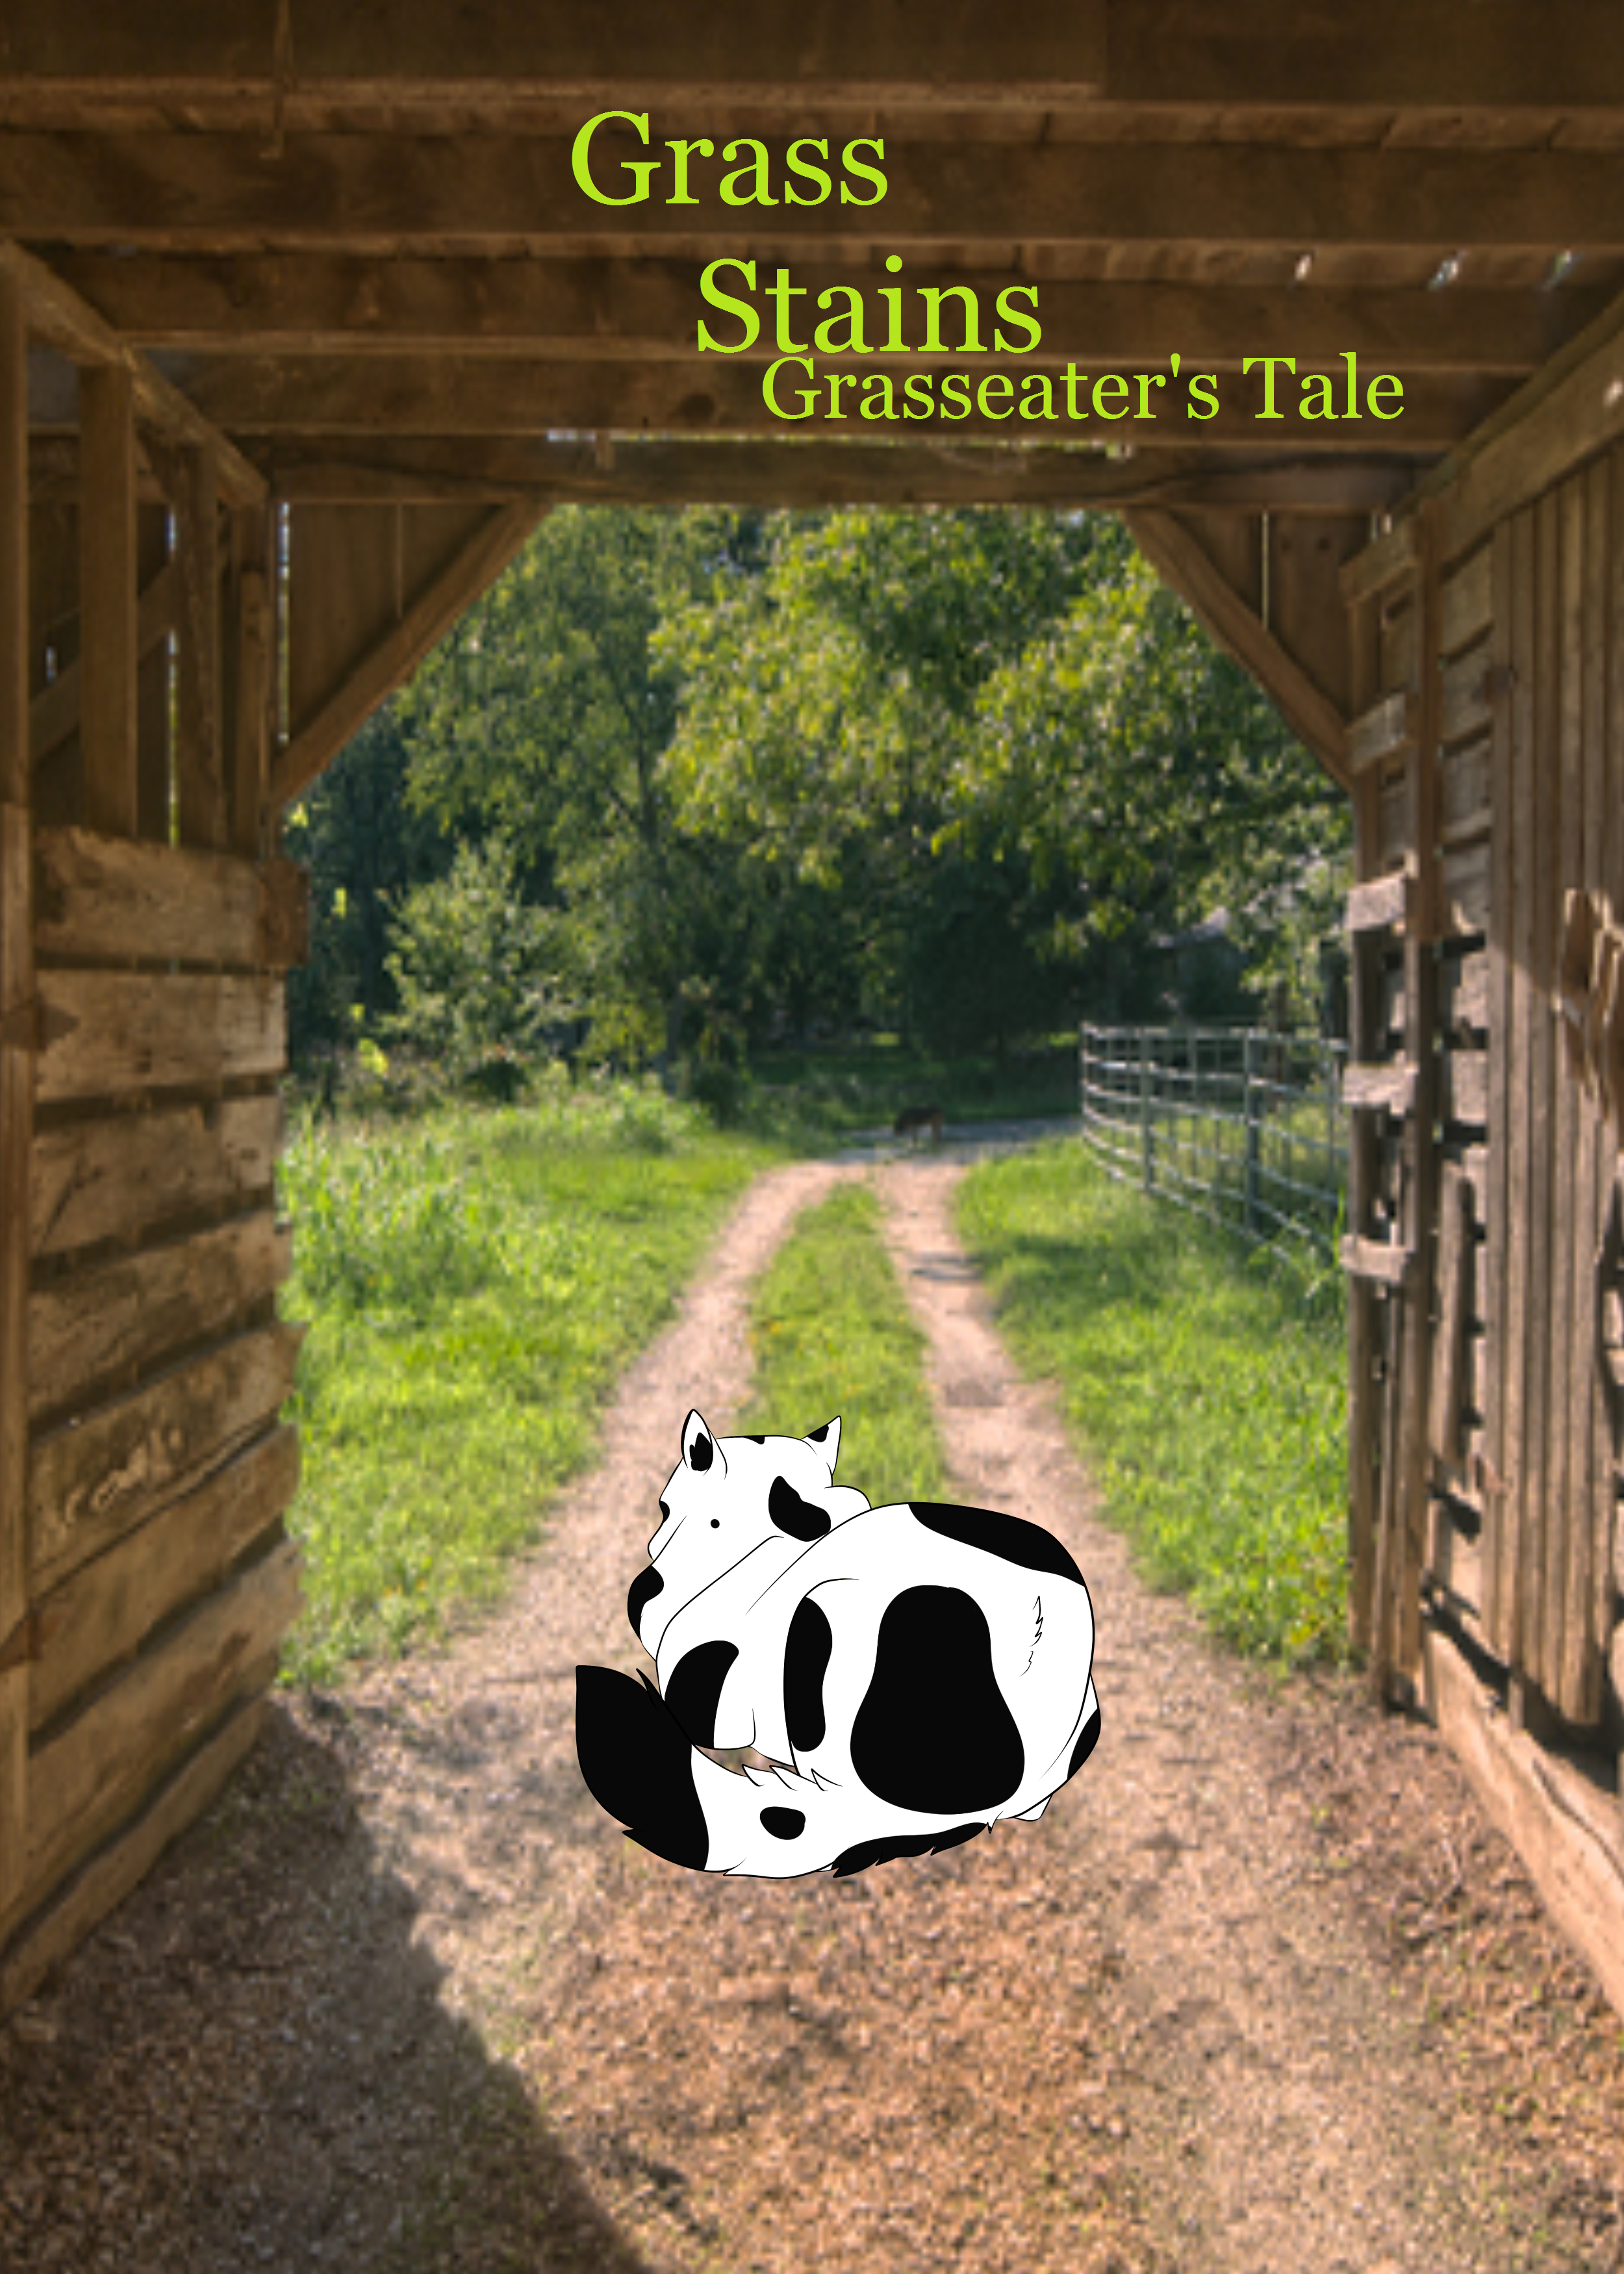 Grass Stains - Grasseater's Tale